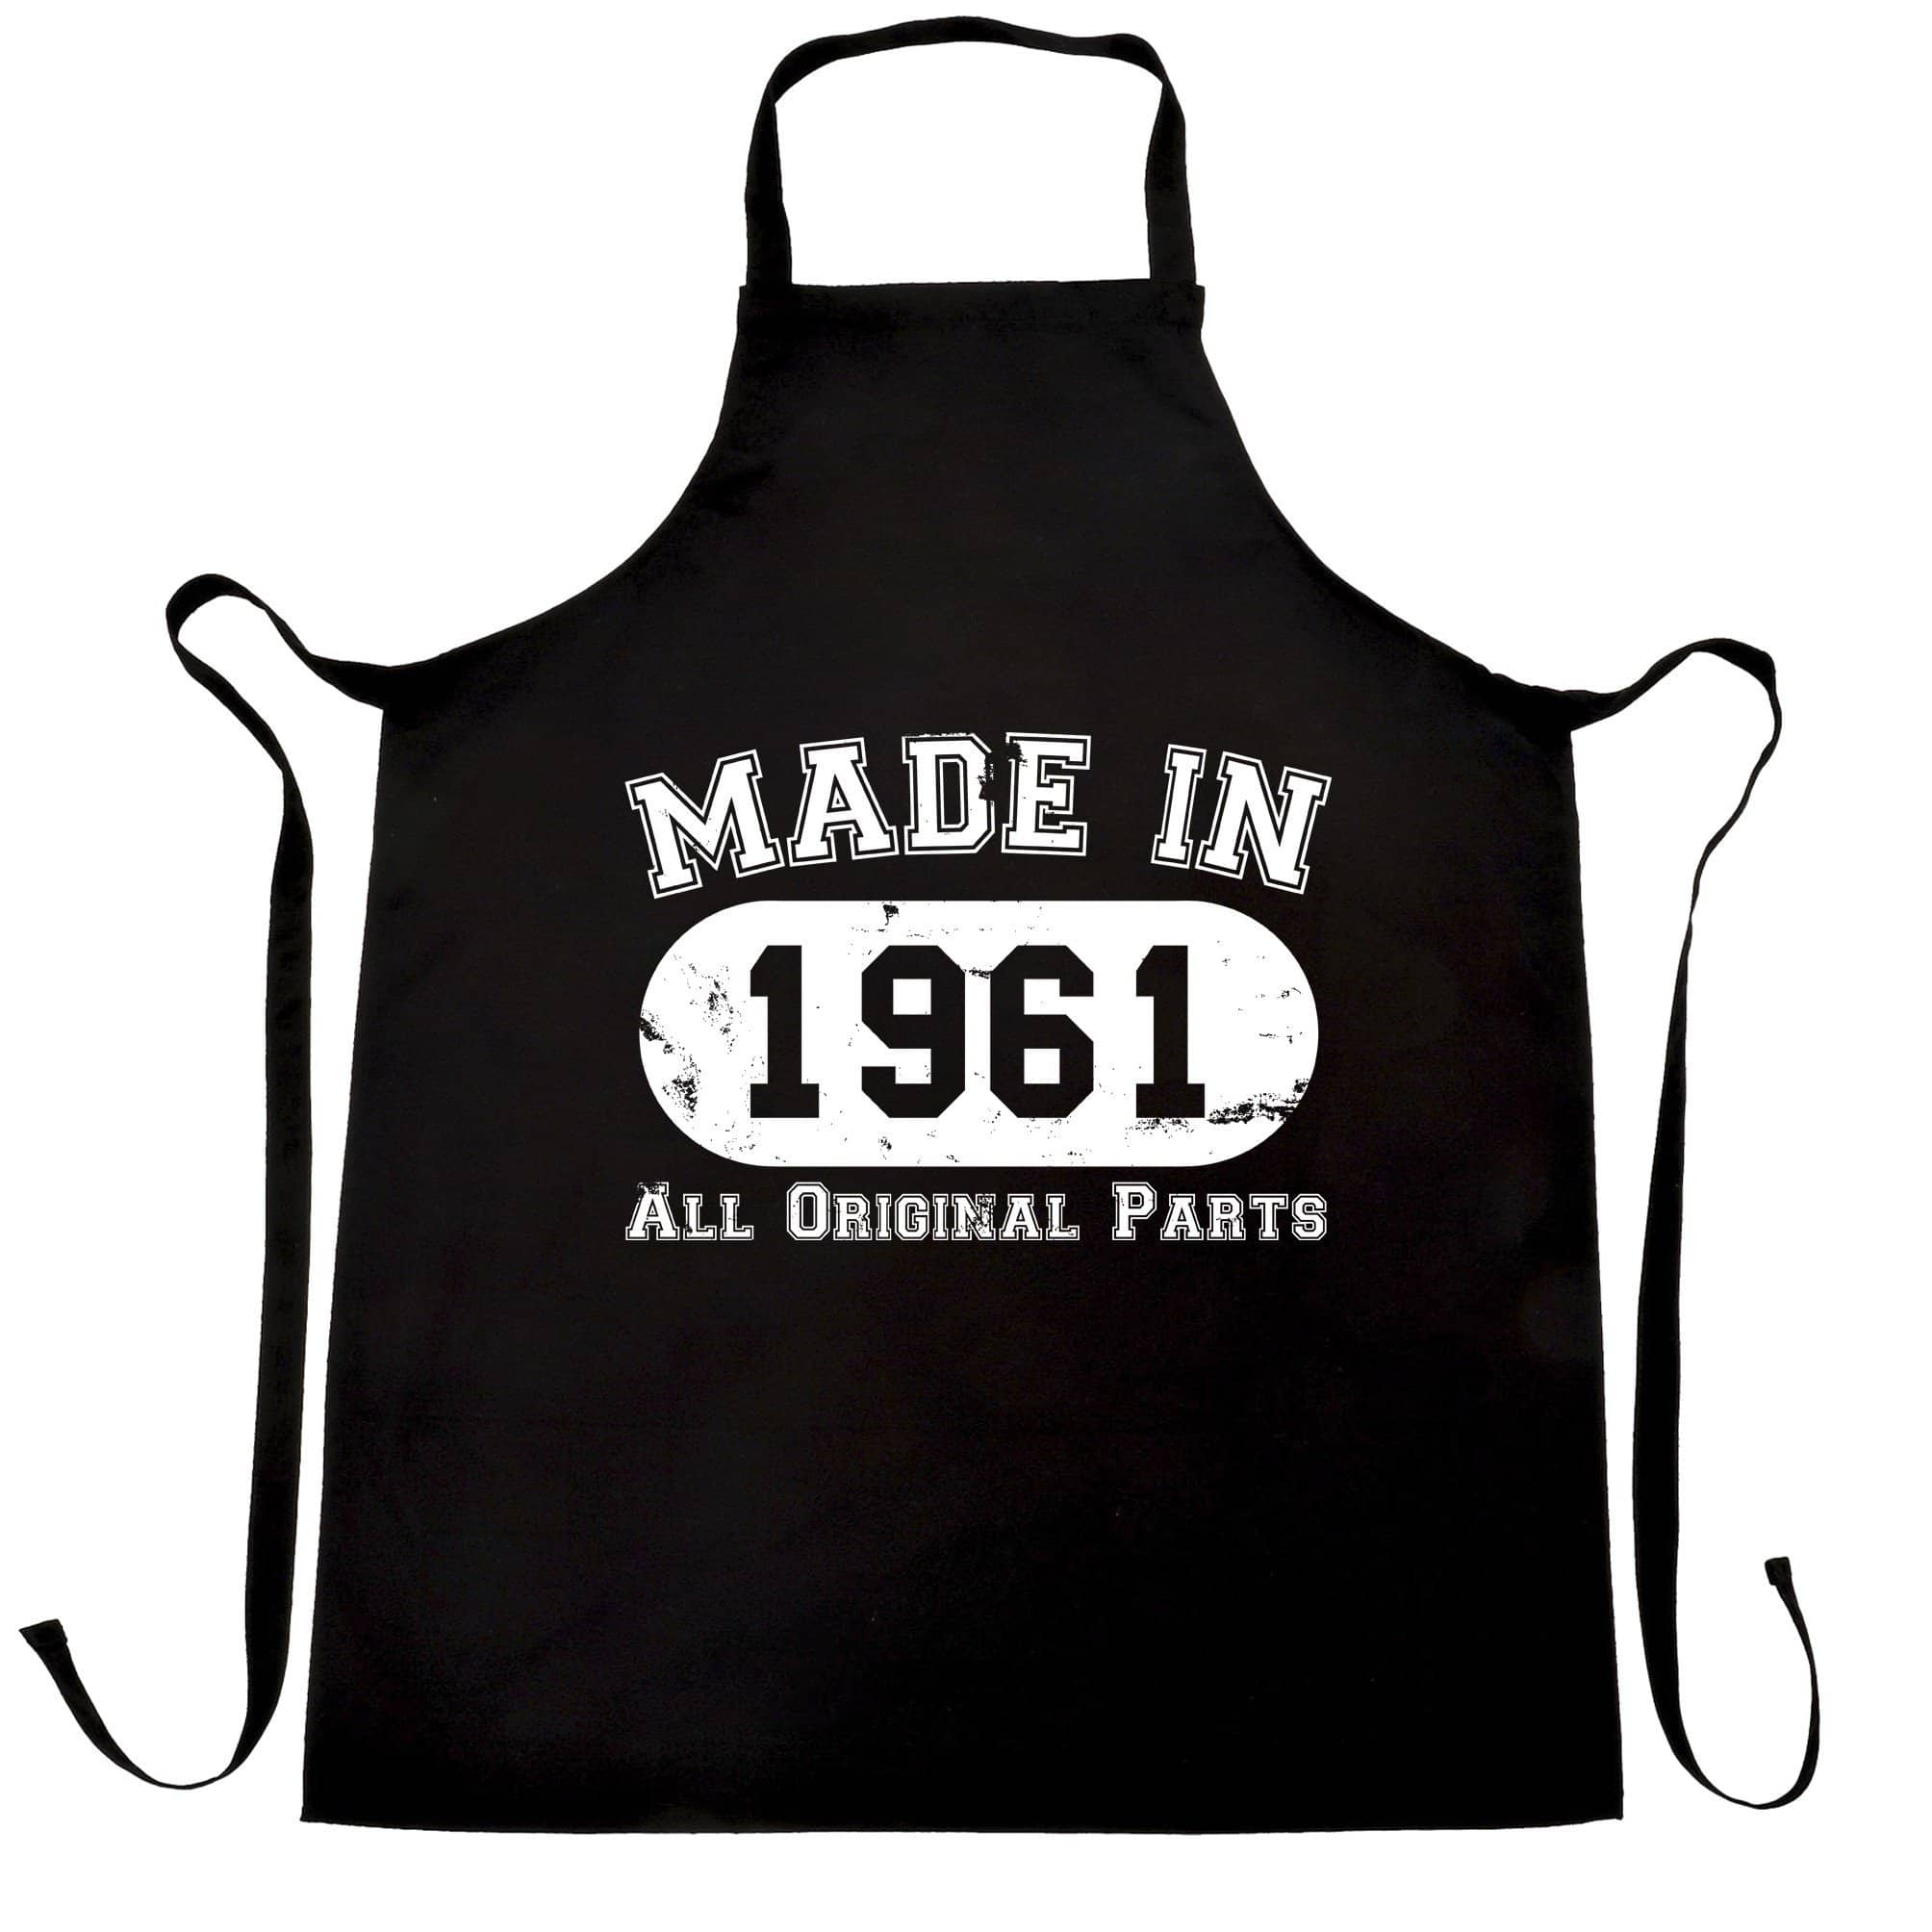 Made in 1961 All Original Parts Apron [Distressed]